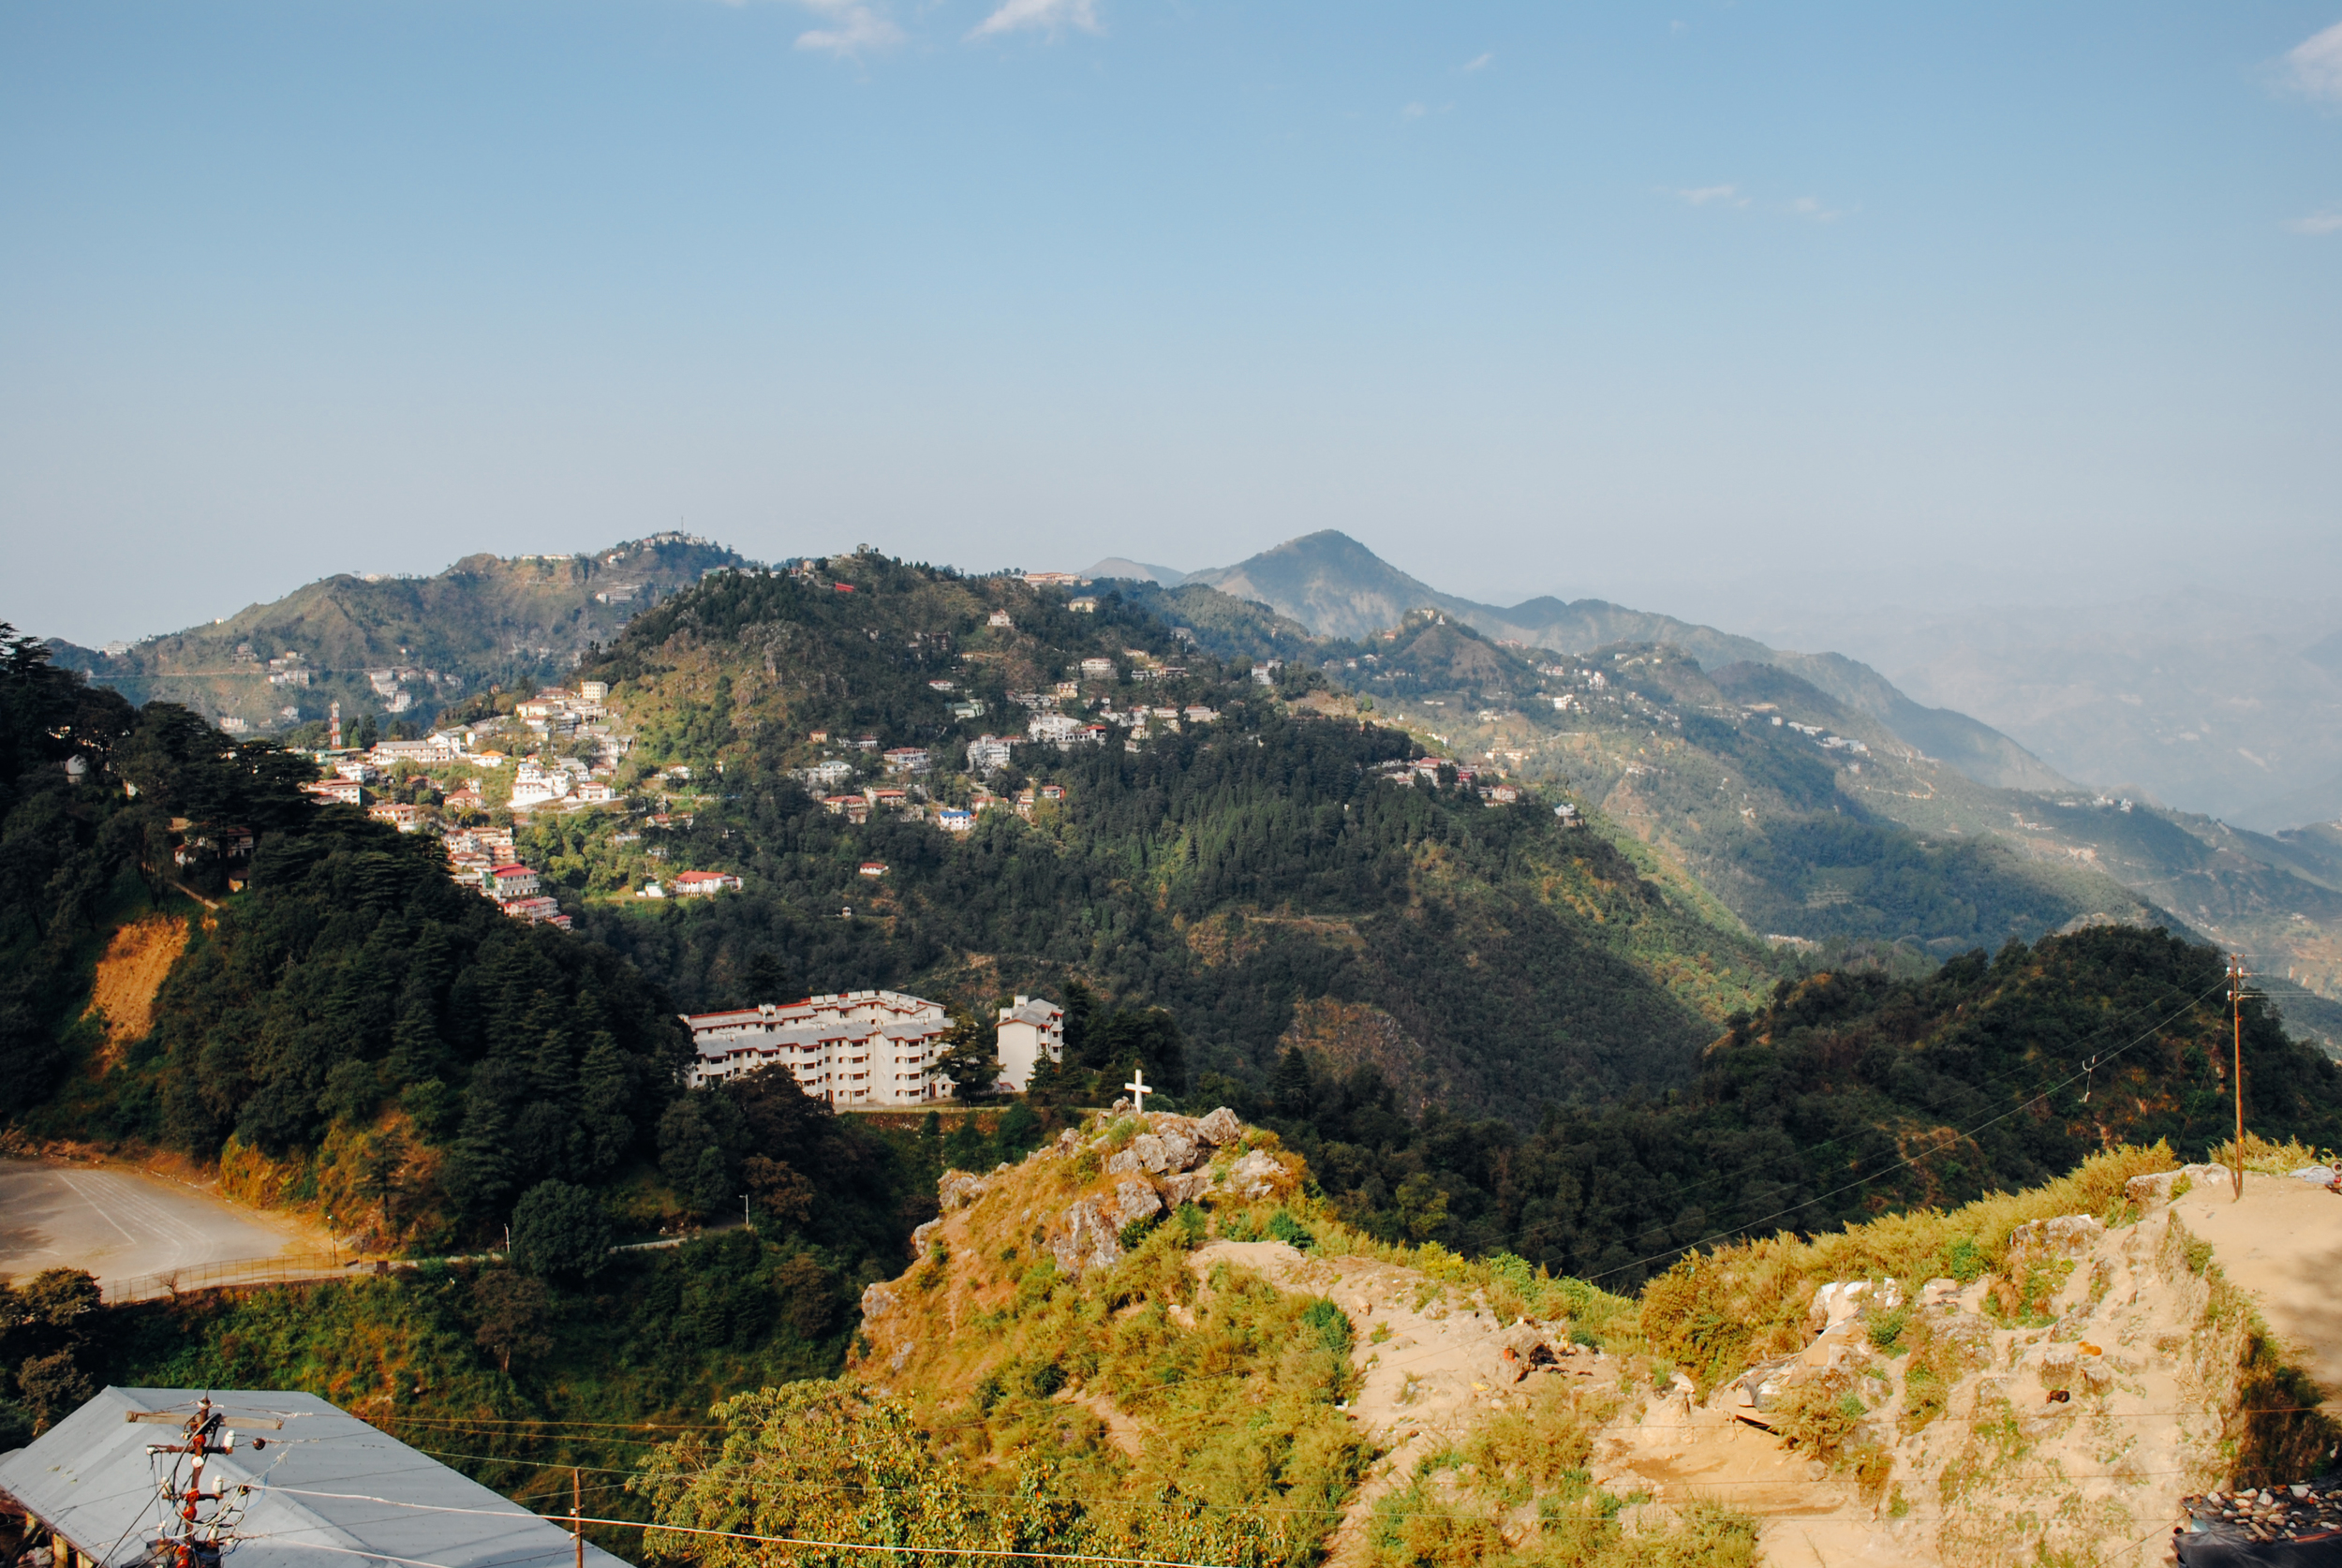 I took this photo while in Mussoorie, India for the first time in Nov 2012. A place where you very much feel on the precipitous edge of the world.